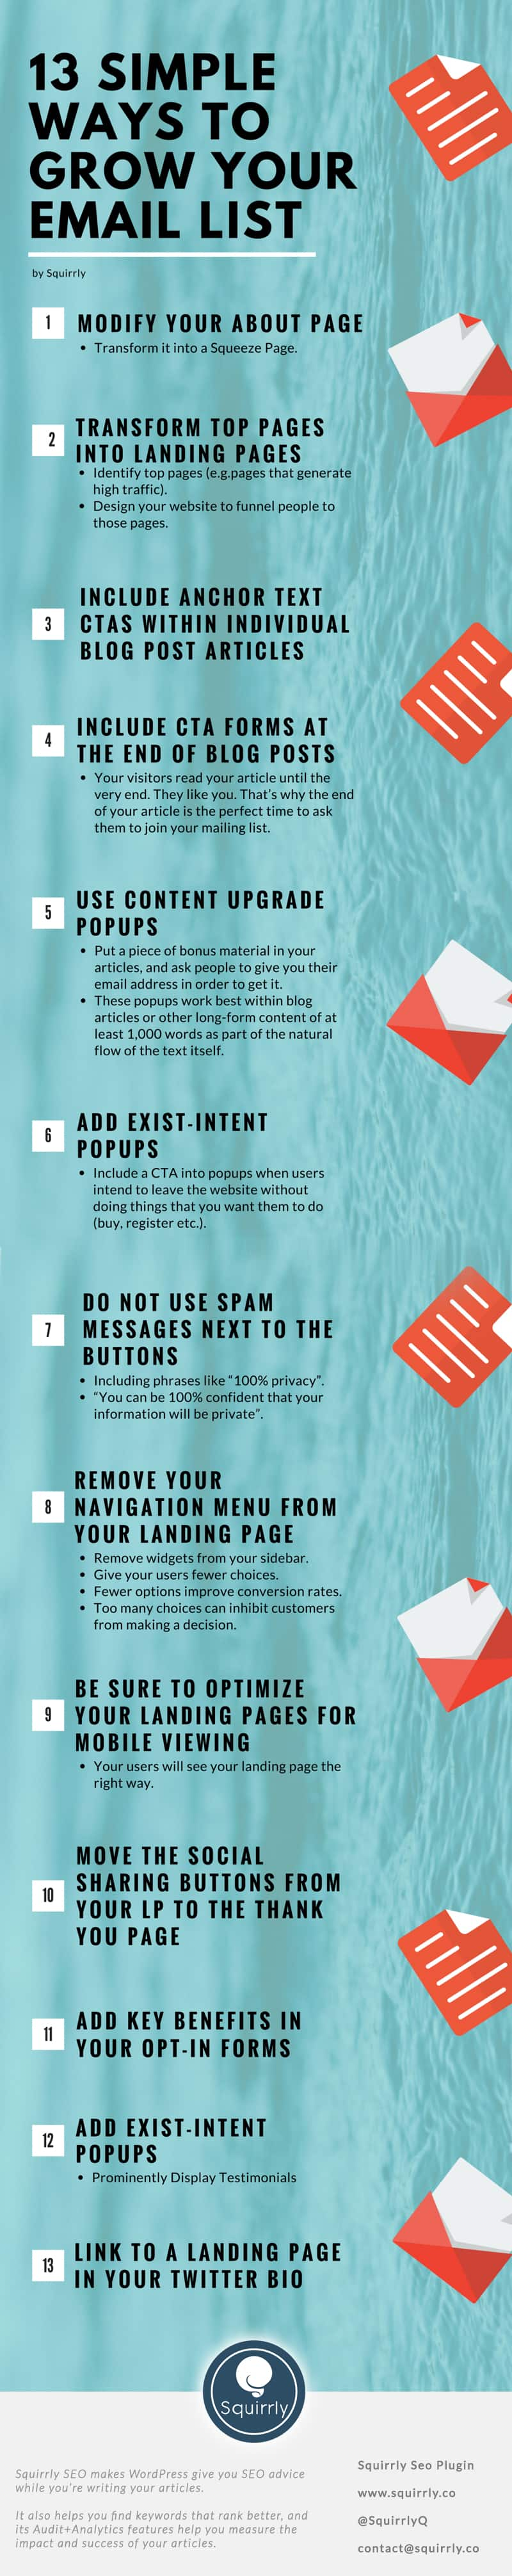 Grow your email list infographic